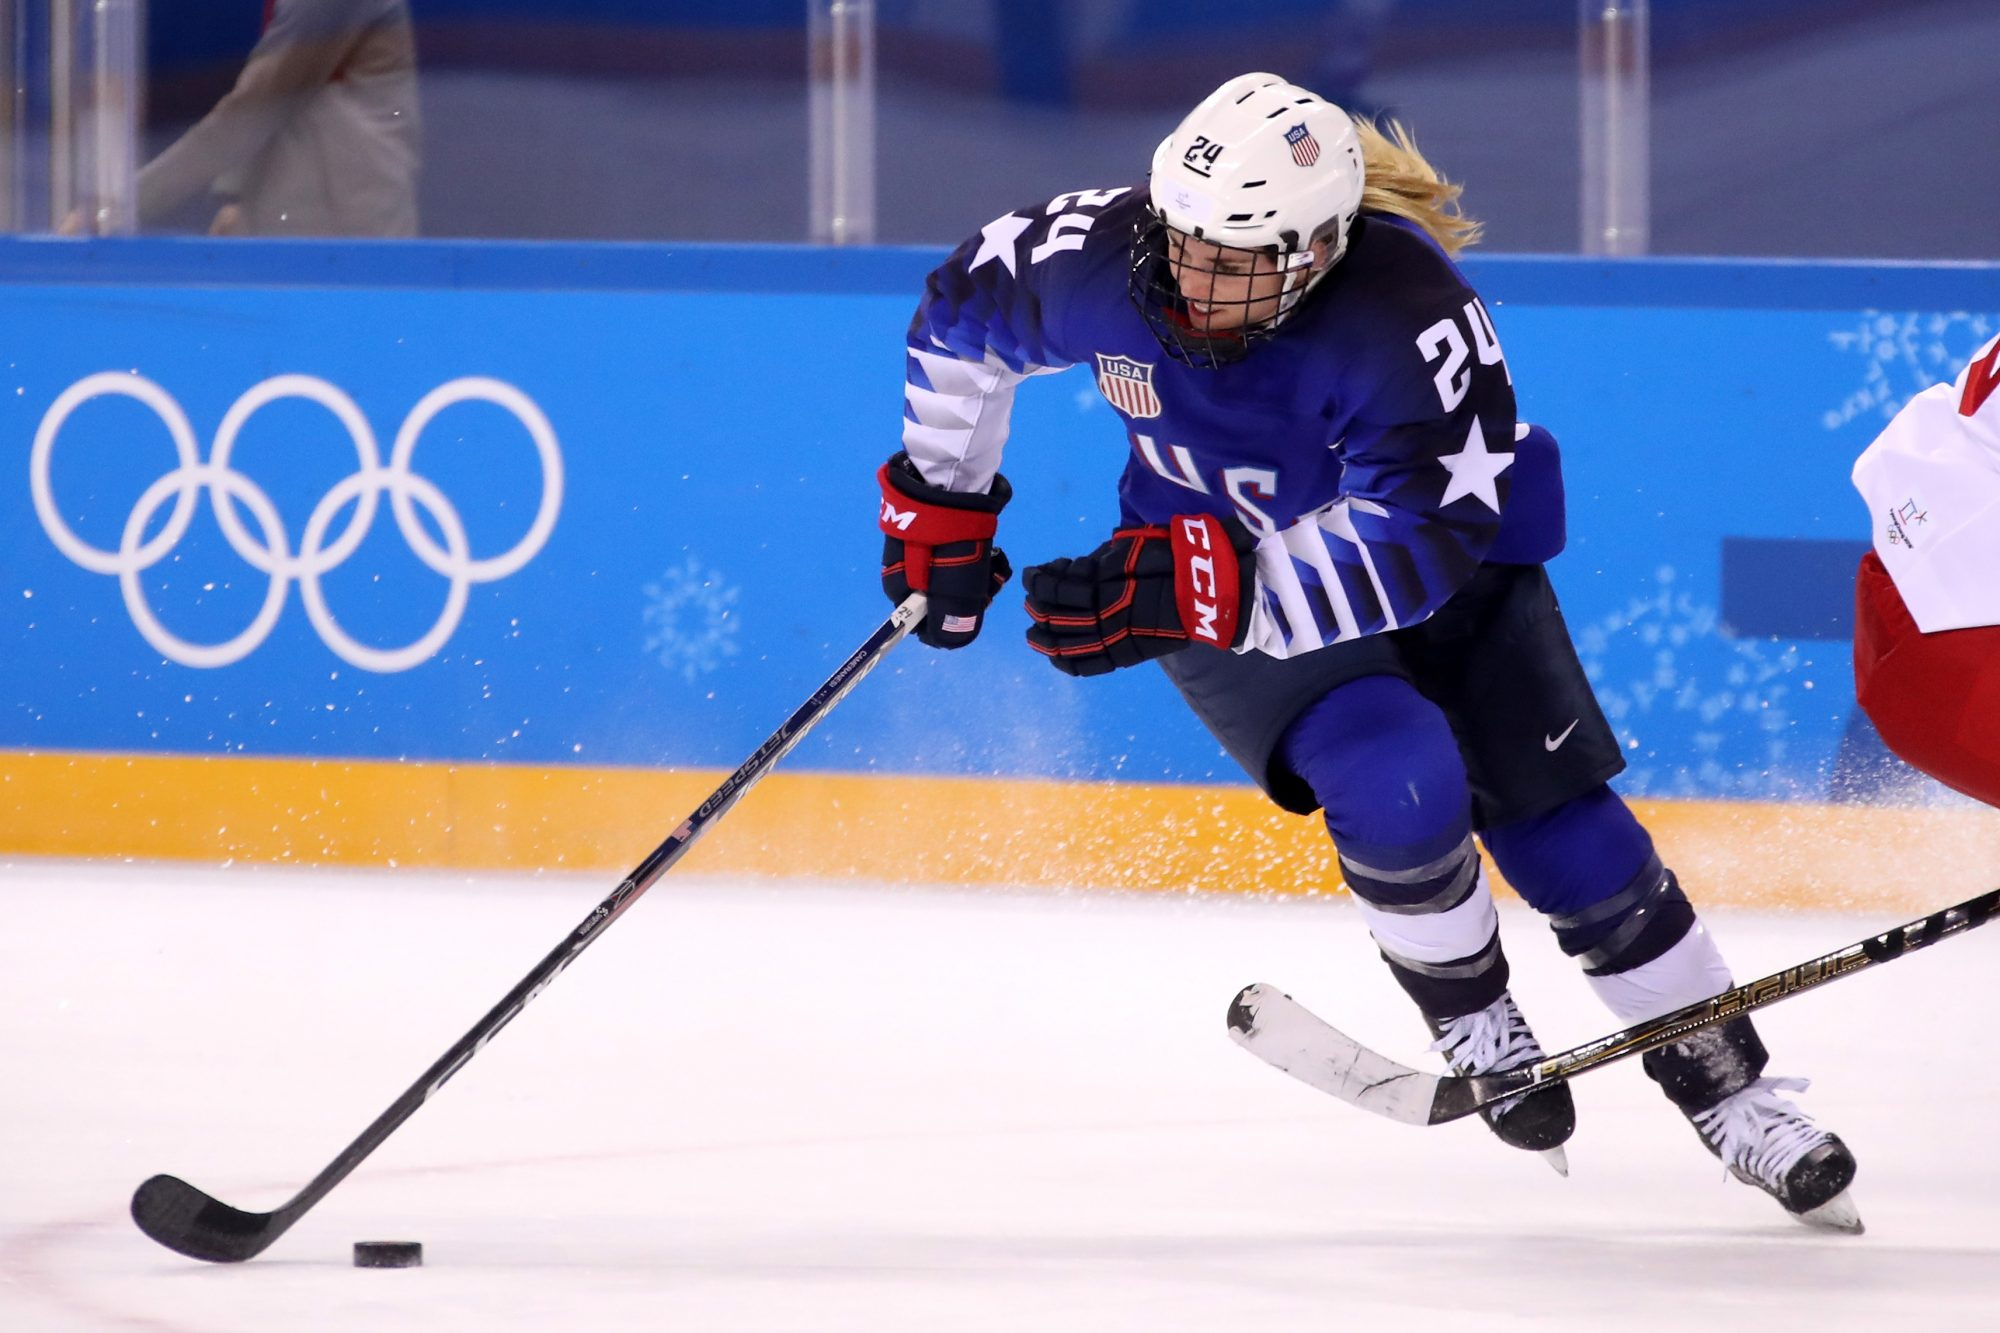 USA women's ice hockey at the 2018 Winter Olympics